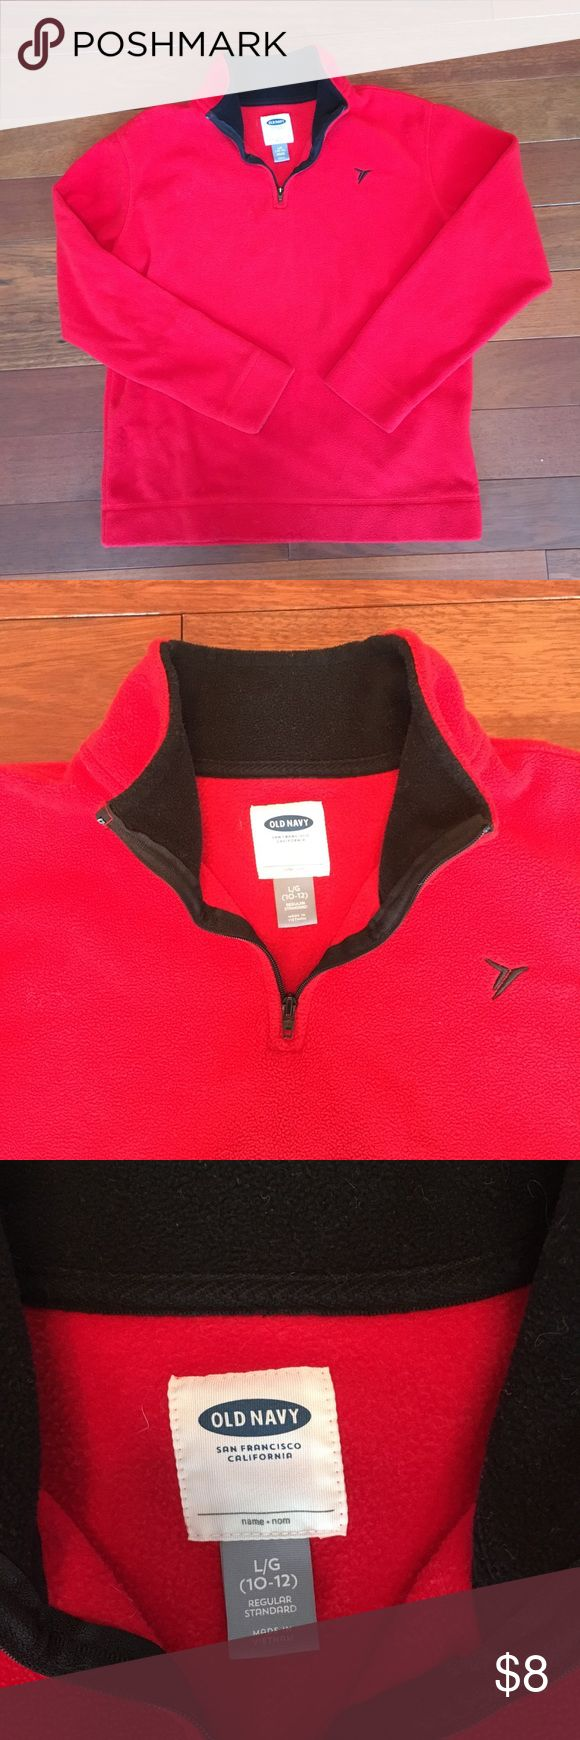 Kids Red Old Navy fleece pull over! Only worn a few times! Red Old Navy fleece! Great condition! L 10-12 Old Navy Shirts & Tops Sweatshirts & Hoodies